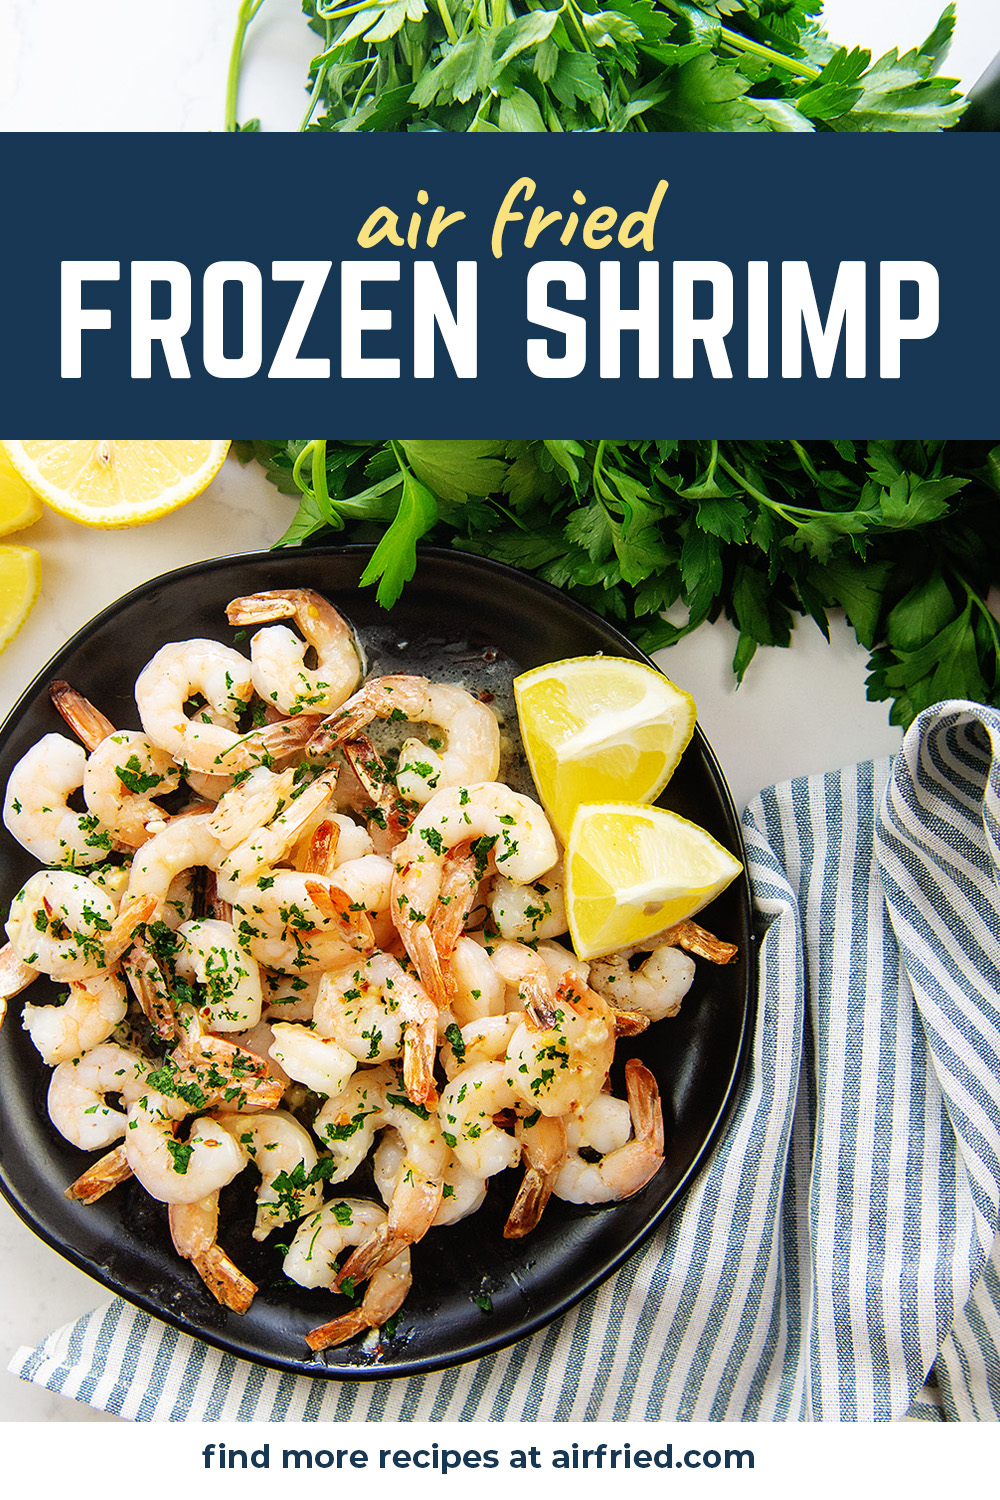 Frozen shrimp cooks in the air fryer in minutes and comes out perfect every time!